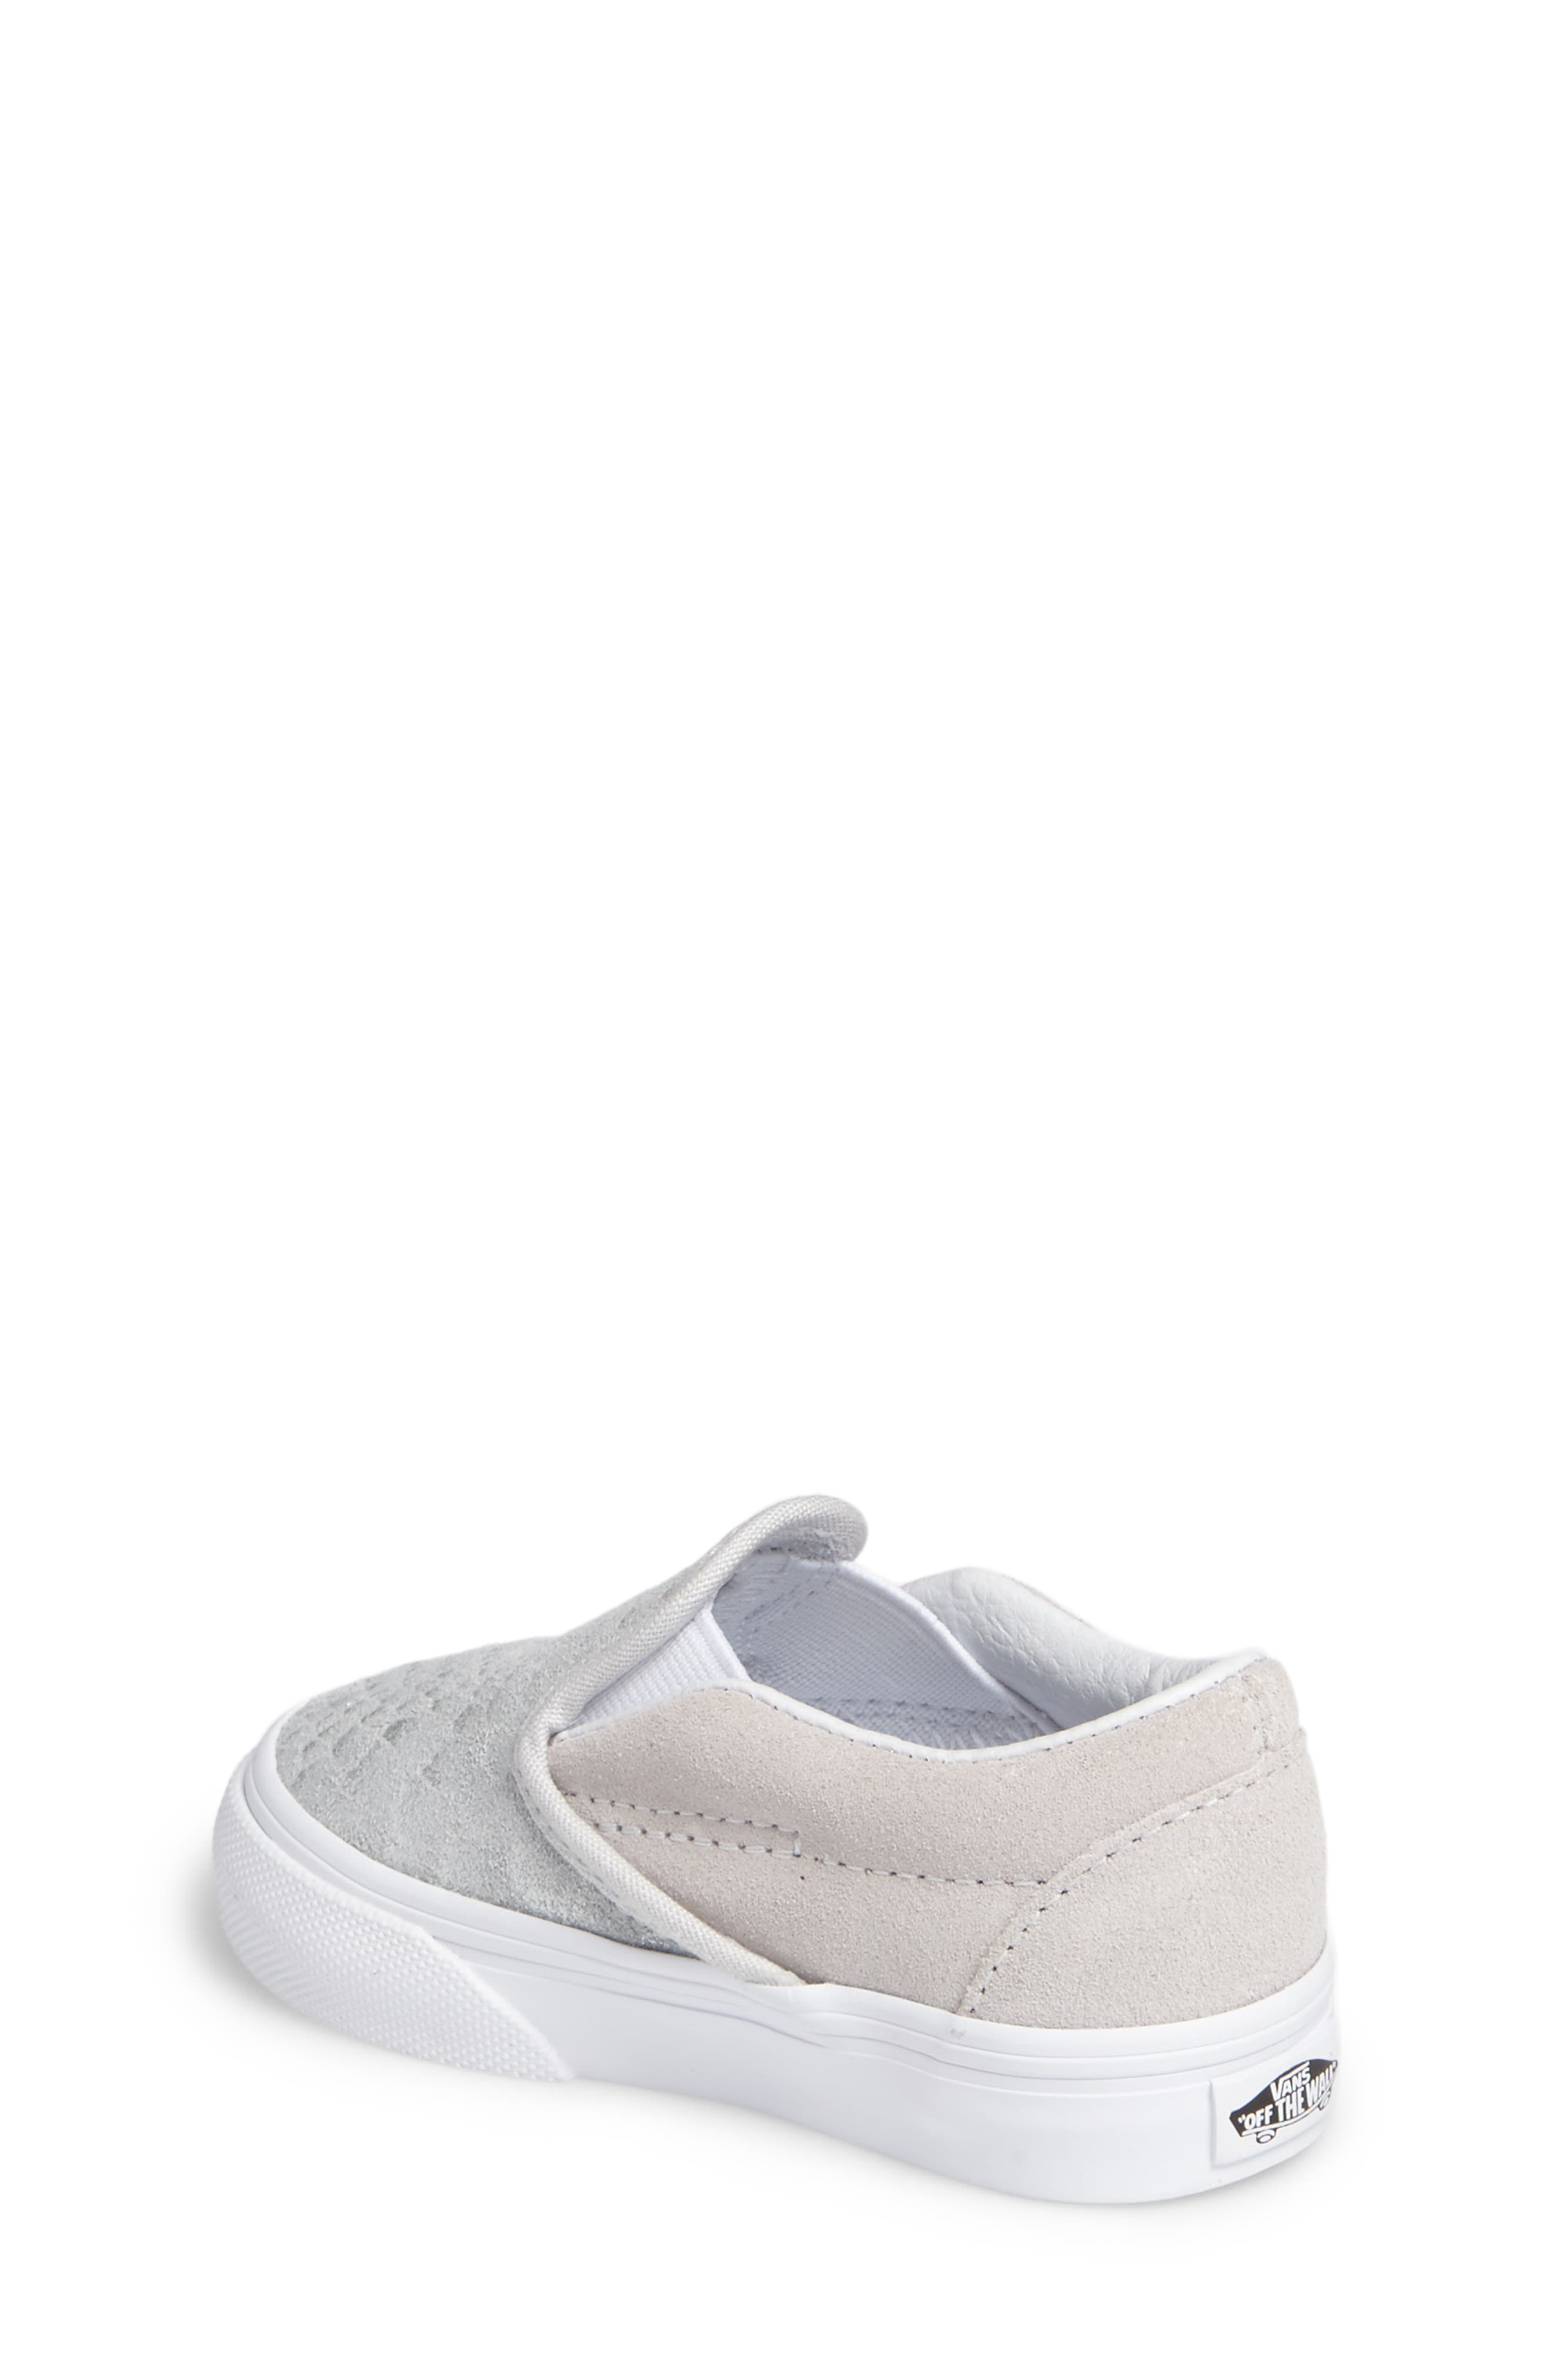 Classic Slip-On Sneaker,                             Alternate thumbnail 2, color,                             040